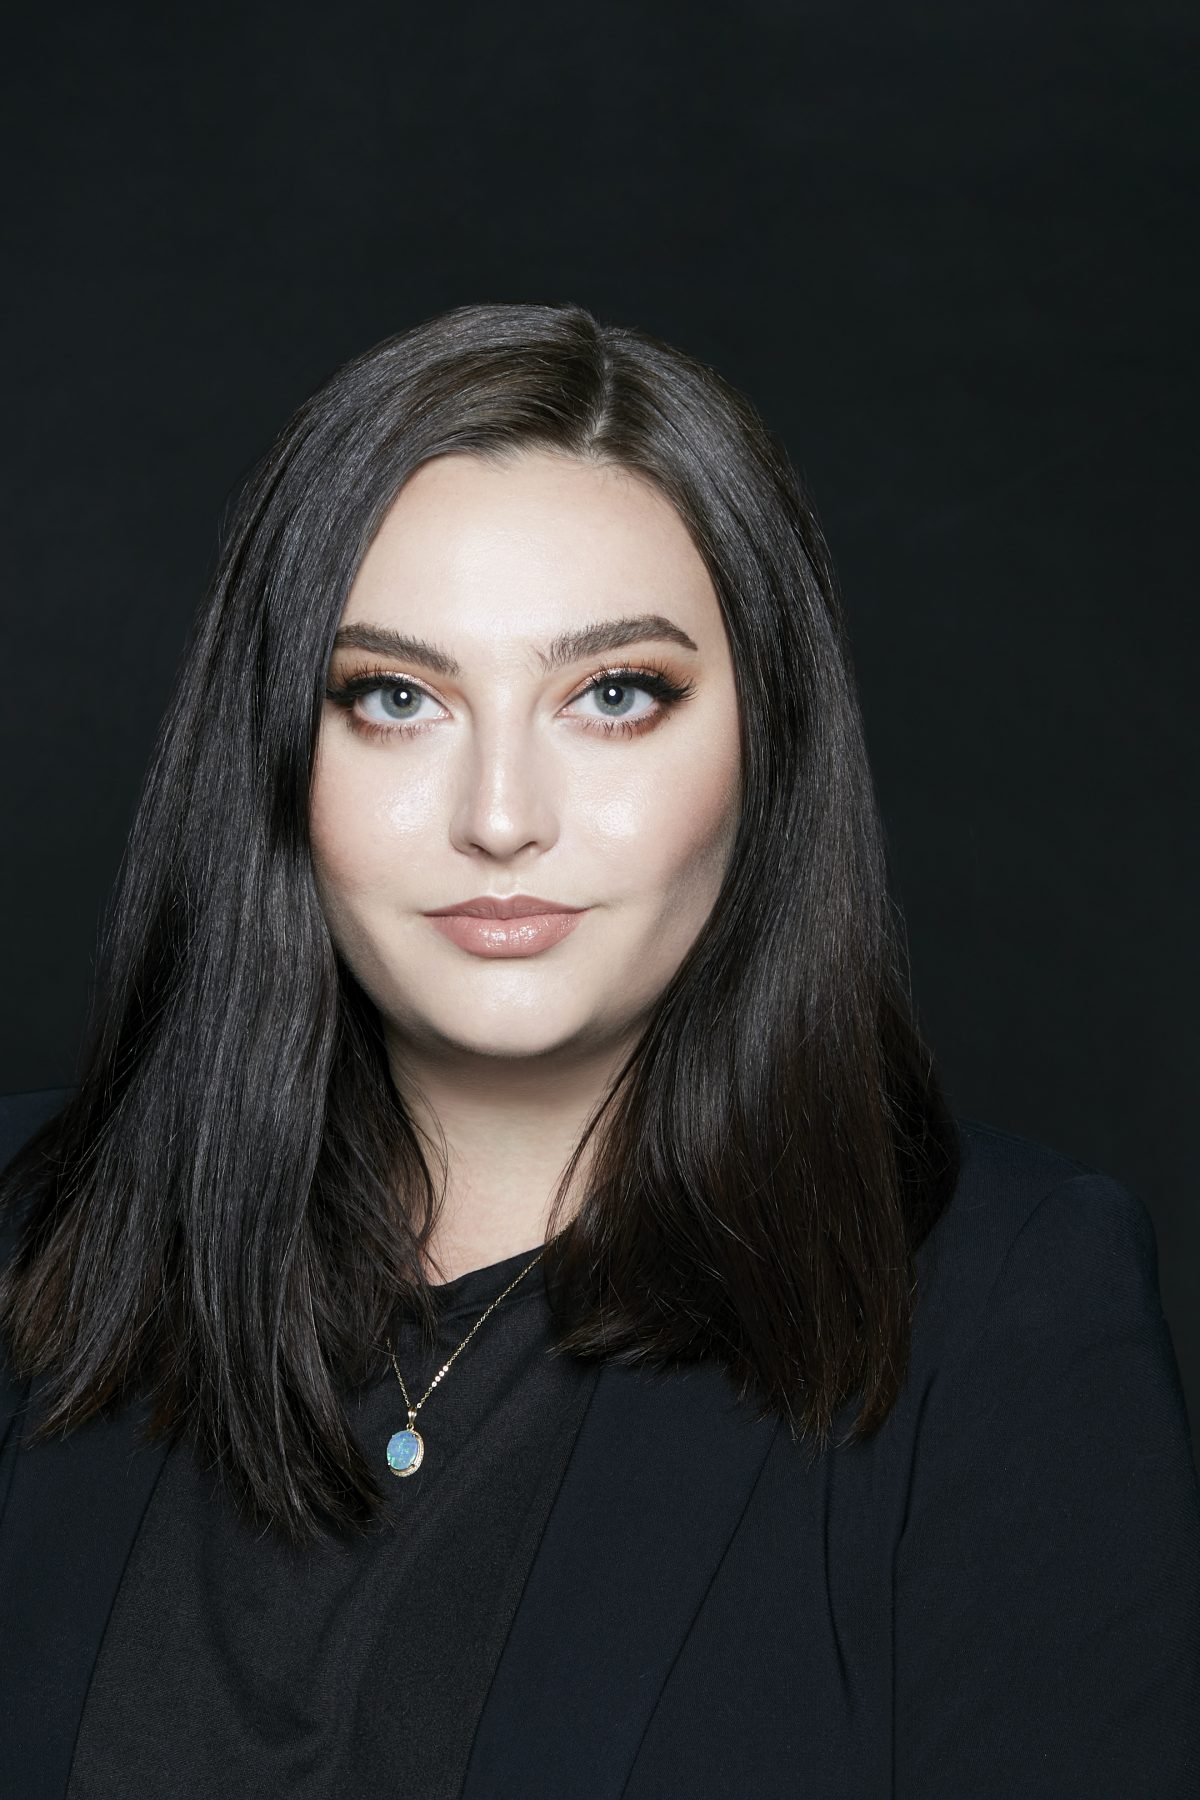 Chanel Temple, Global Makeup Artist for Hourglass Cosmetics